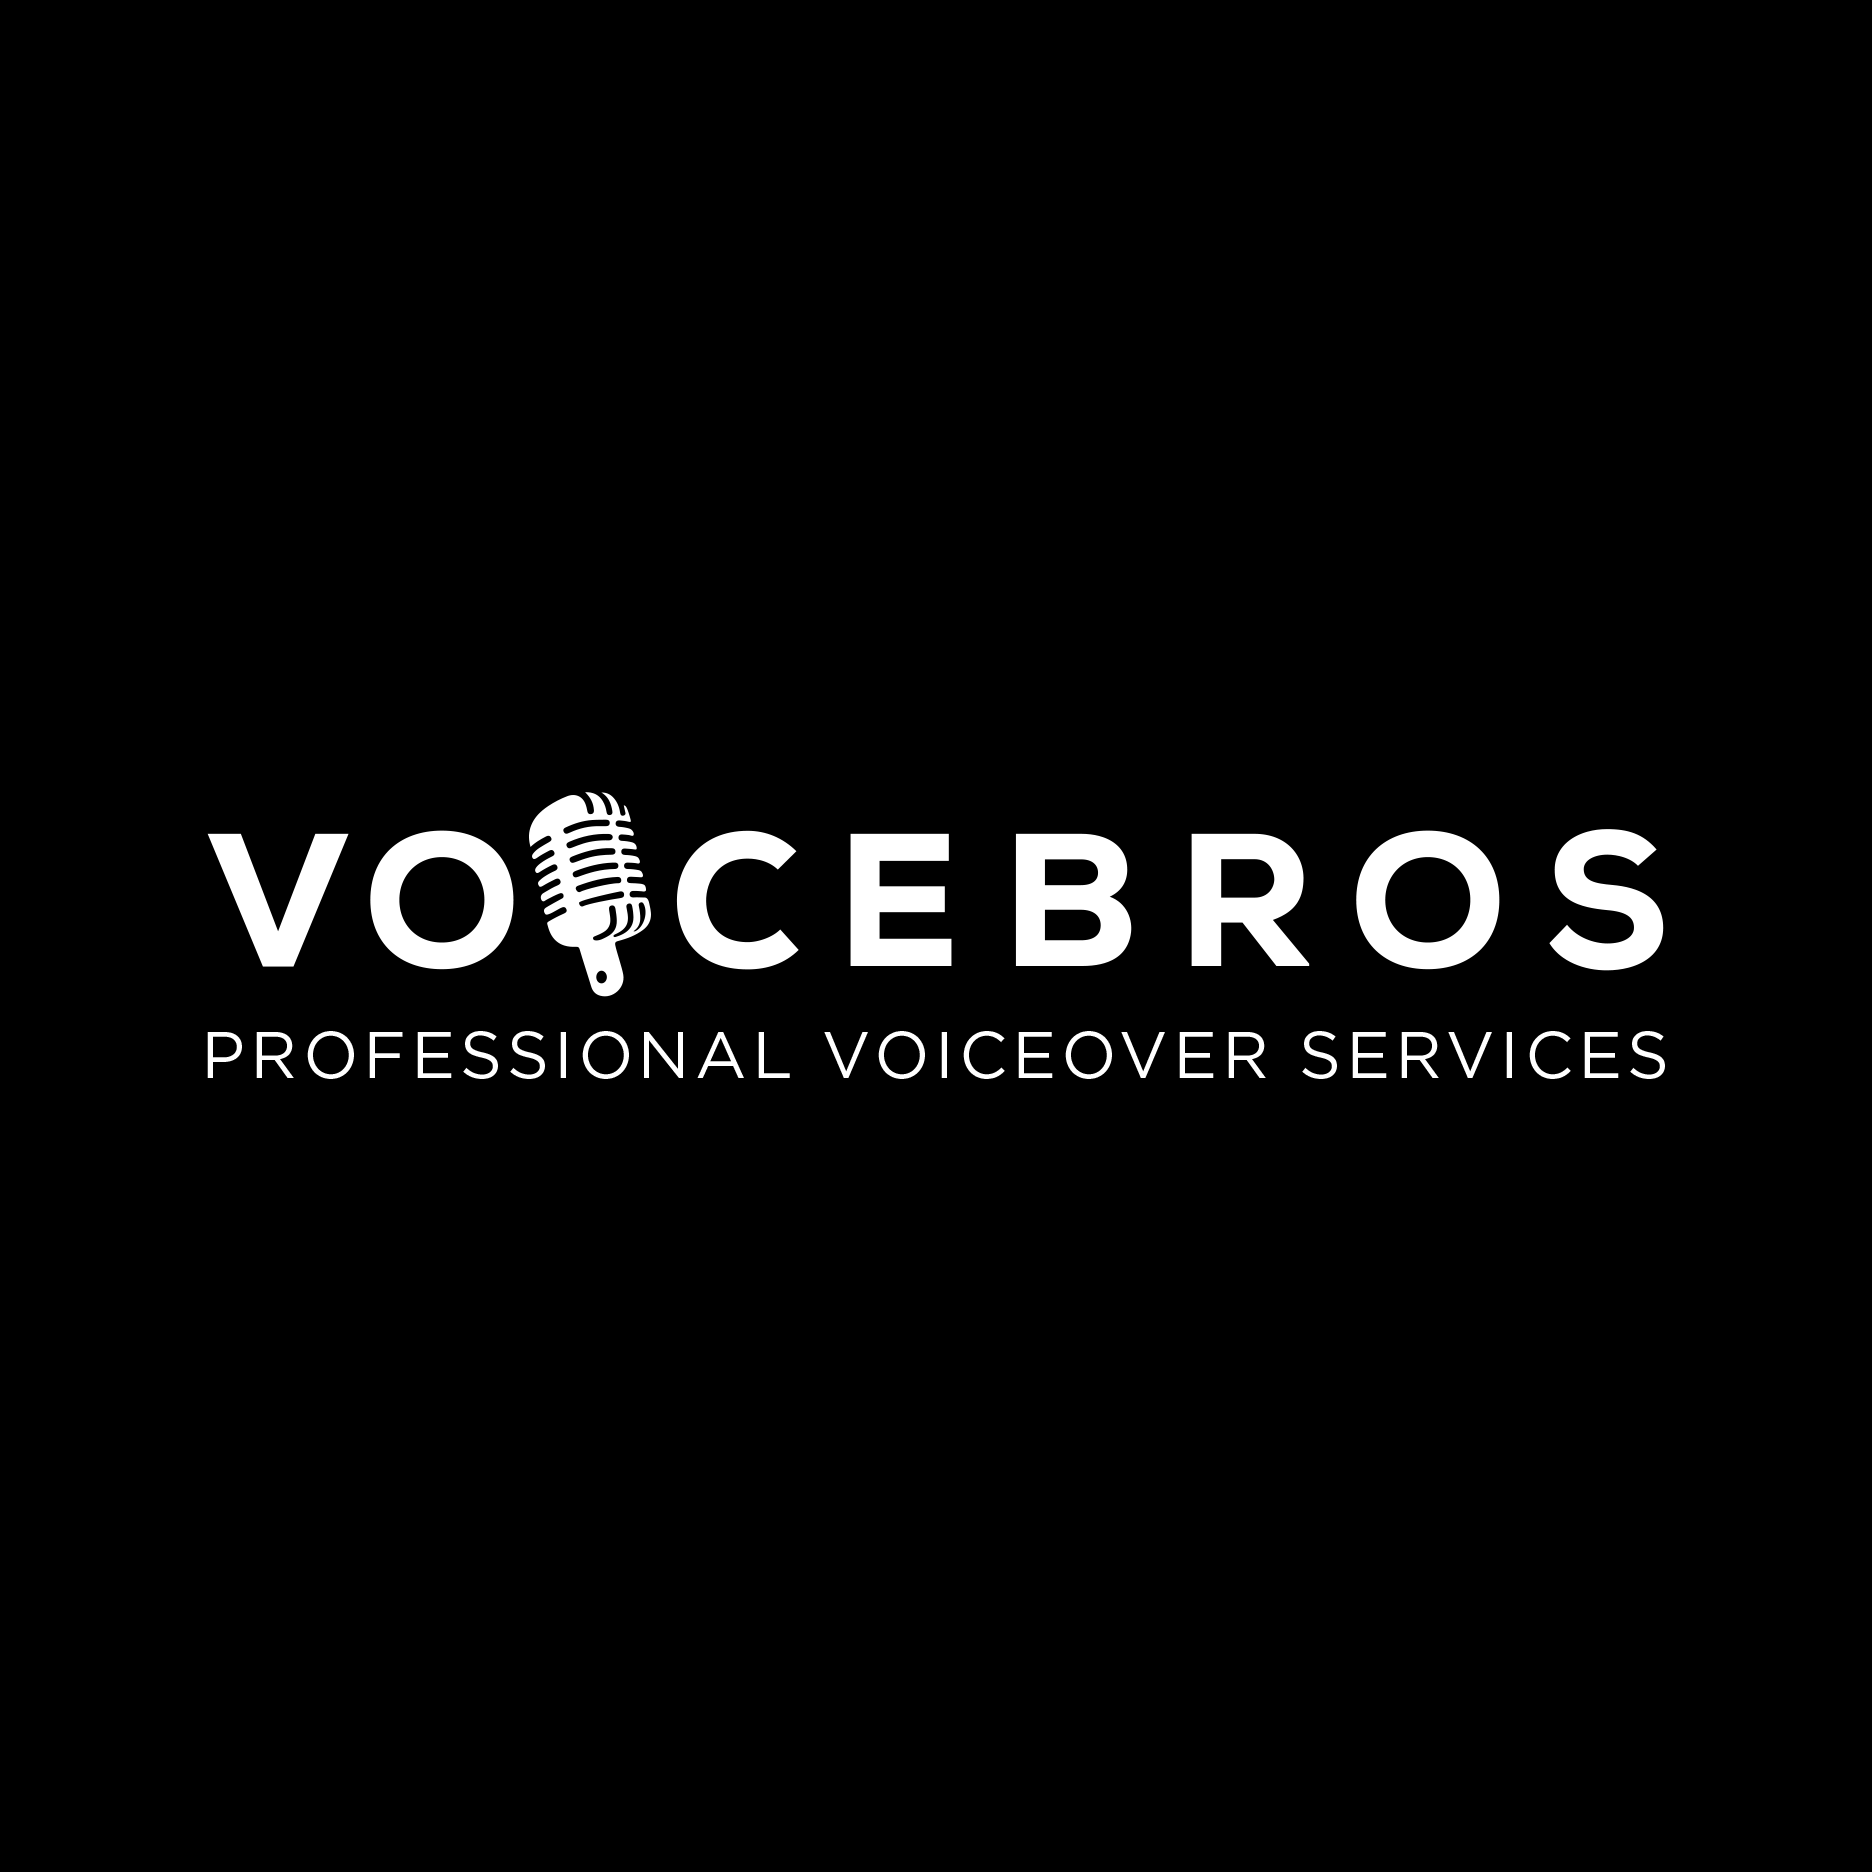 Jhovany V. is a voice over actor